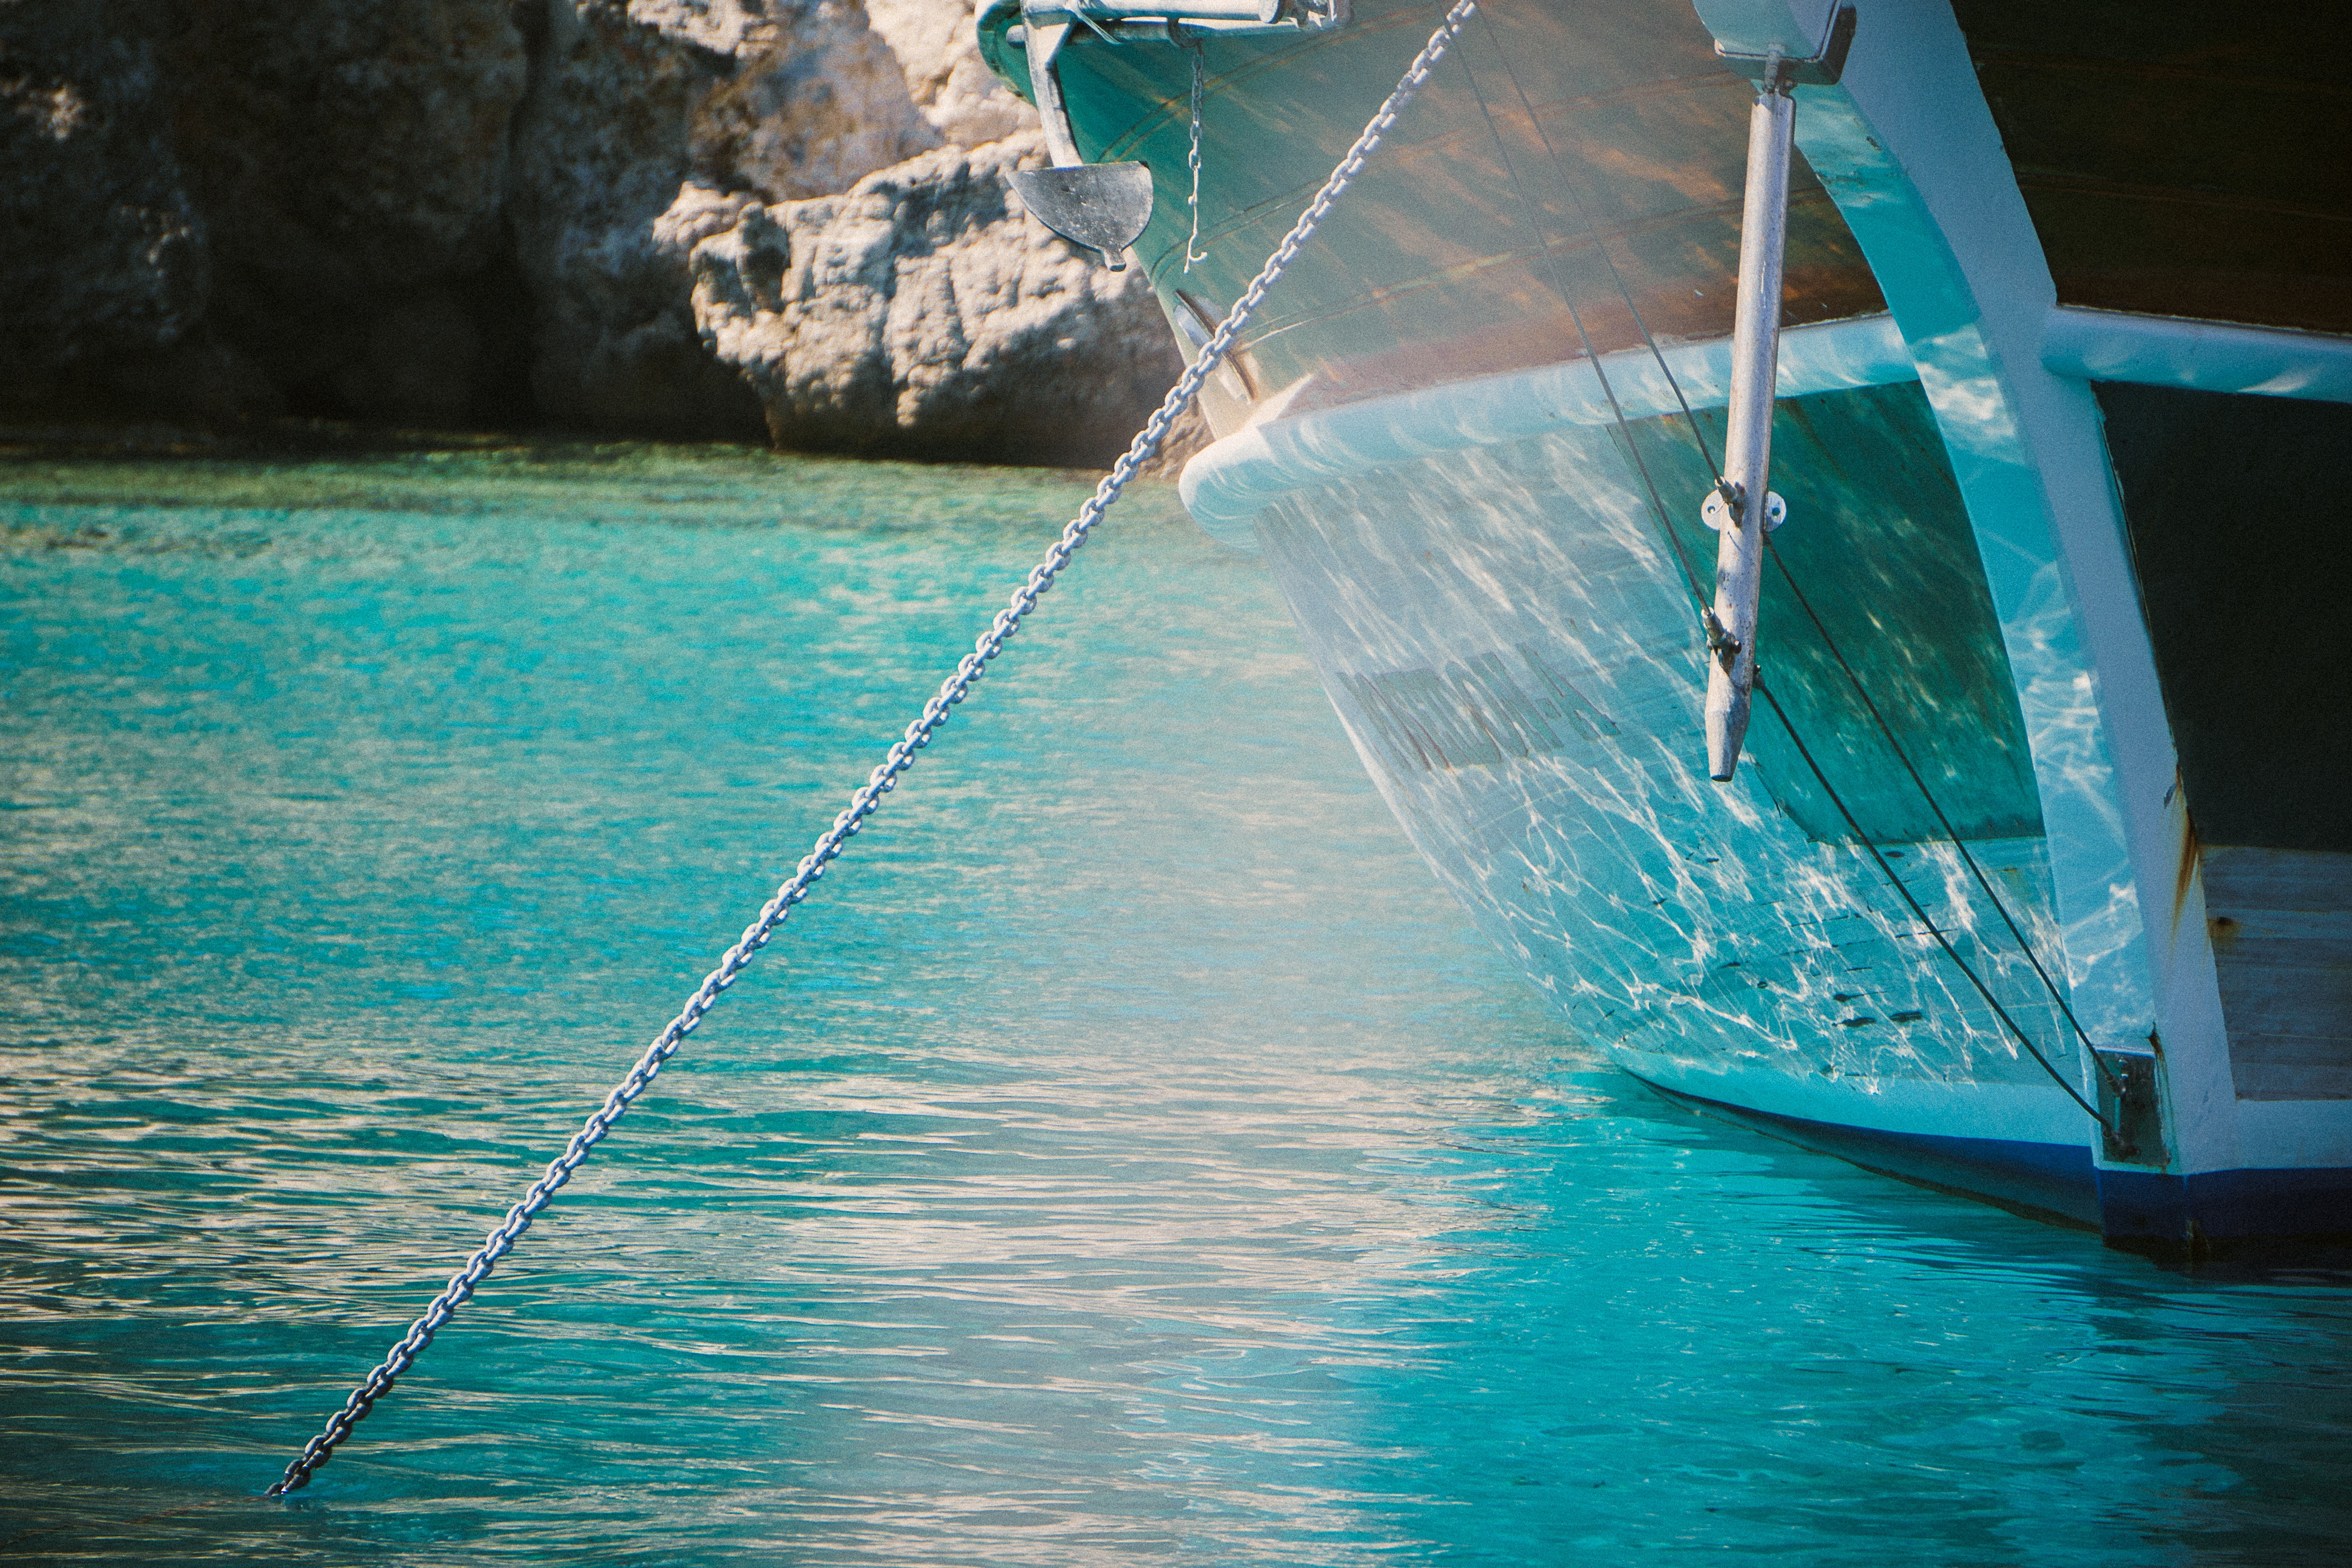 The Ship in the Water, Beach, Blue, Boat, Flow, HQ Photo